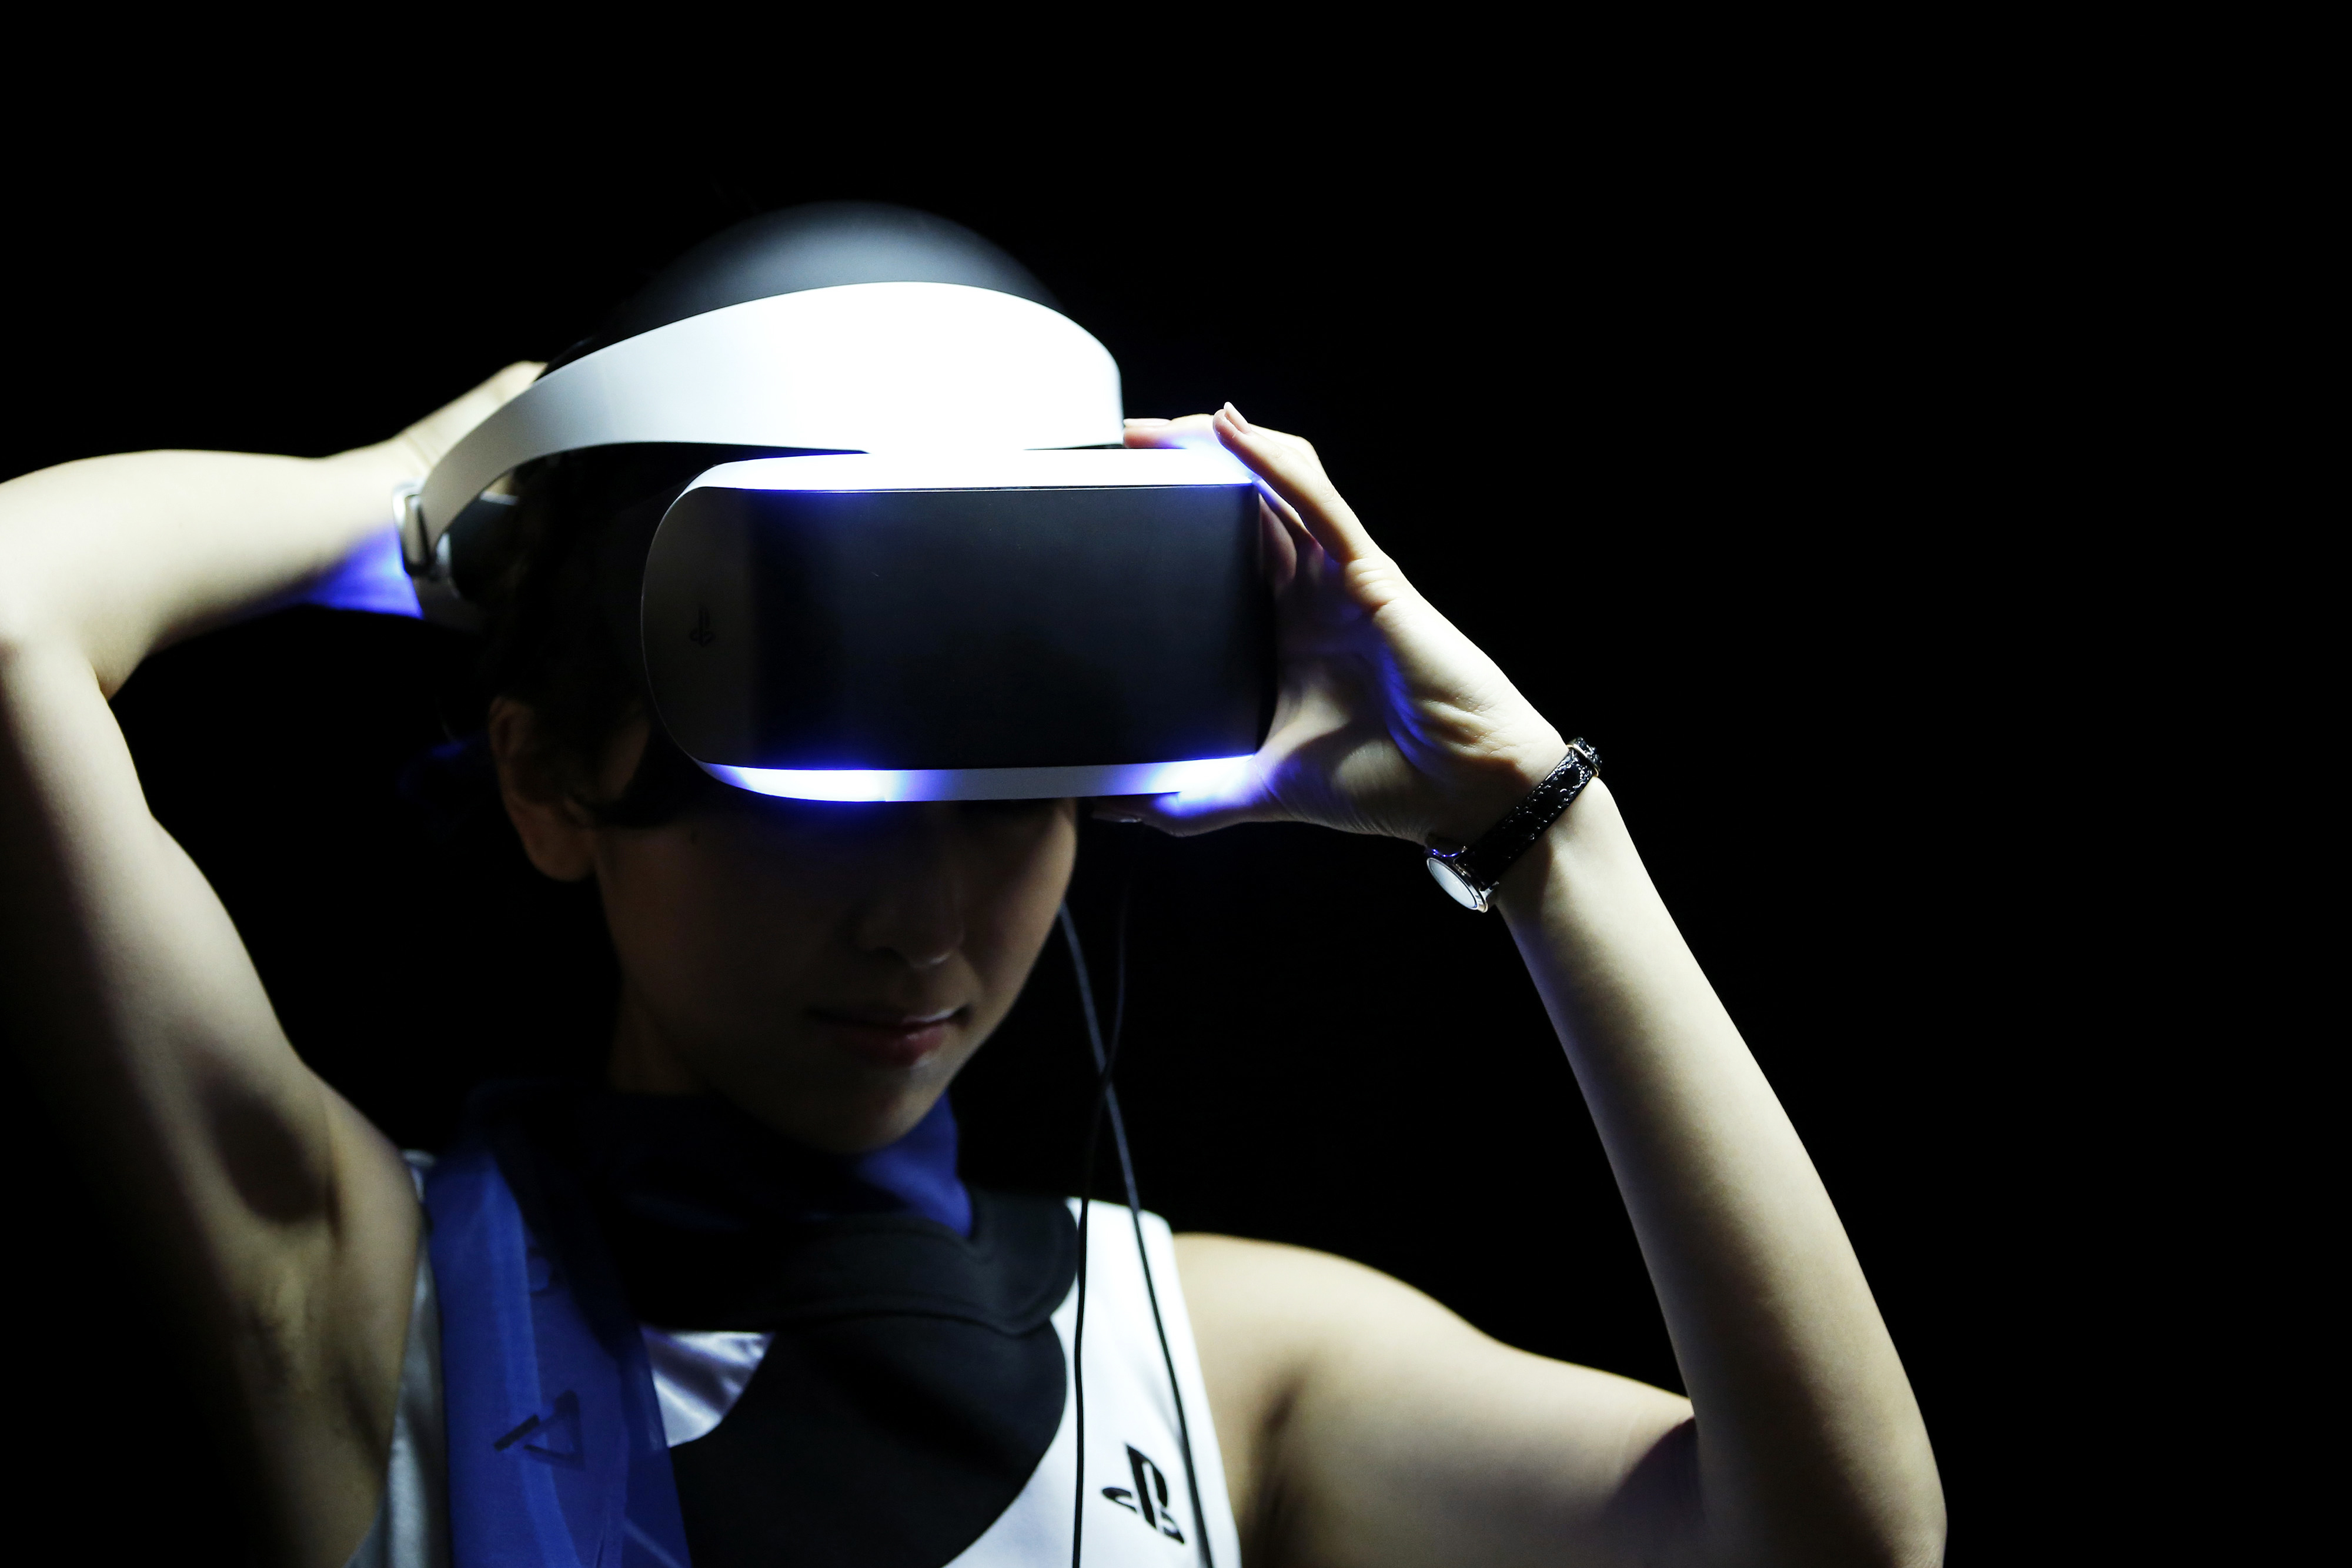 A booth attendant demonstrates the Sony Corp. Project Morpheus virtual reality headset for a photograph at the Tokyo Game Show 2014 in Chiba, Japan, on Thursday, Sept. 18, 2014.